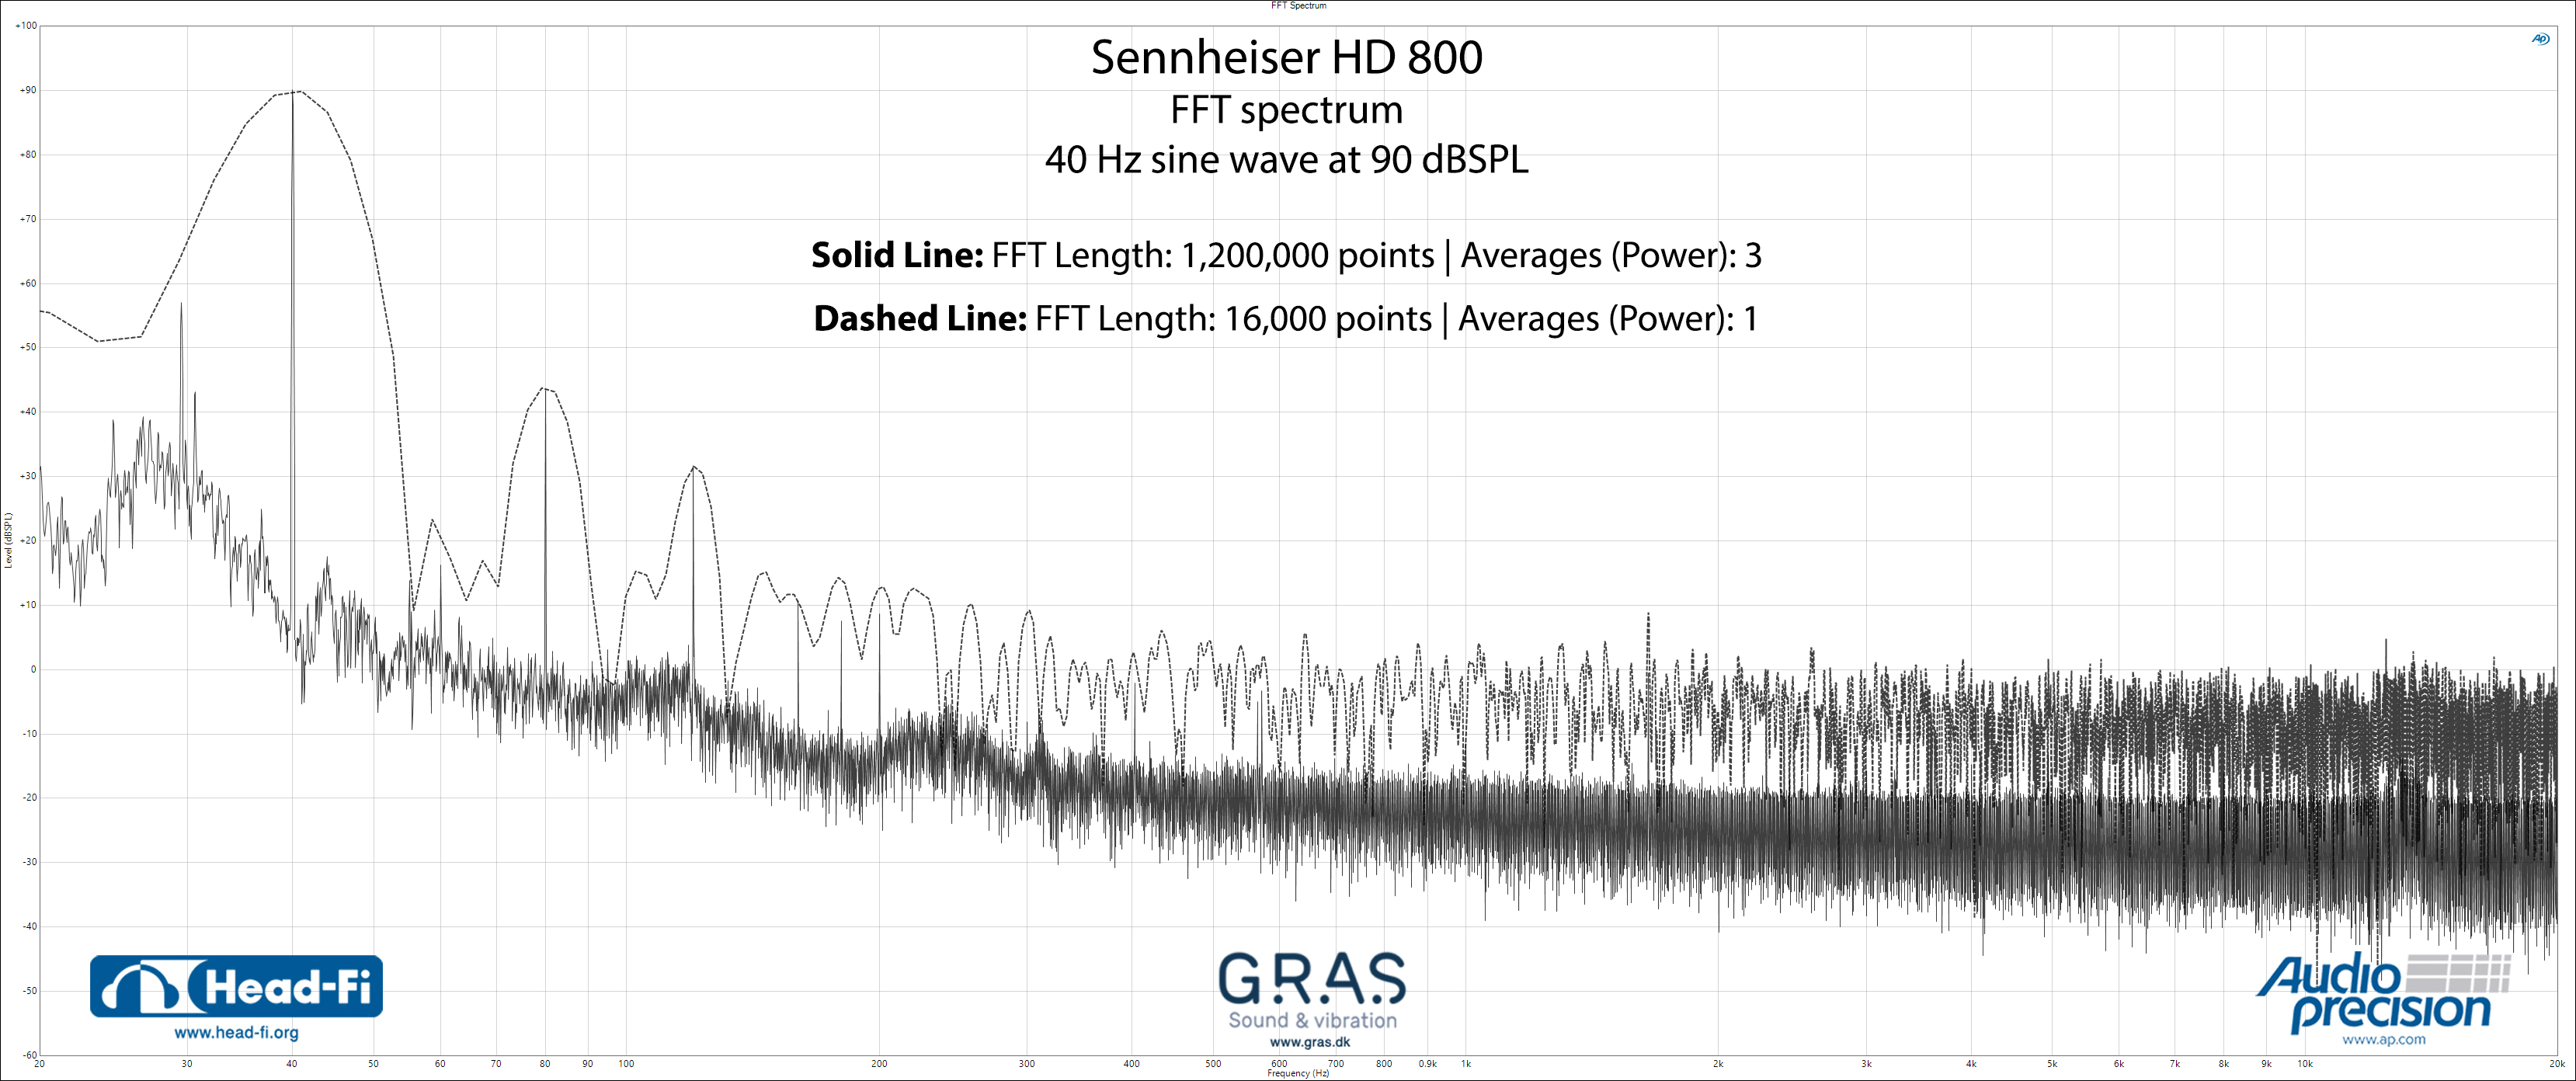 Sennheiser-HD800_FFT-Spectrum_16000-points-average-3_AND_1.2M-points-average-3_corrected-label.jpg